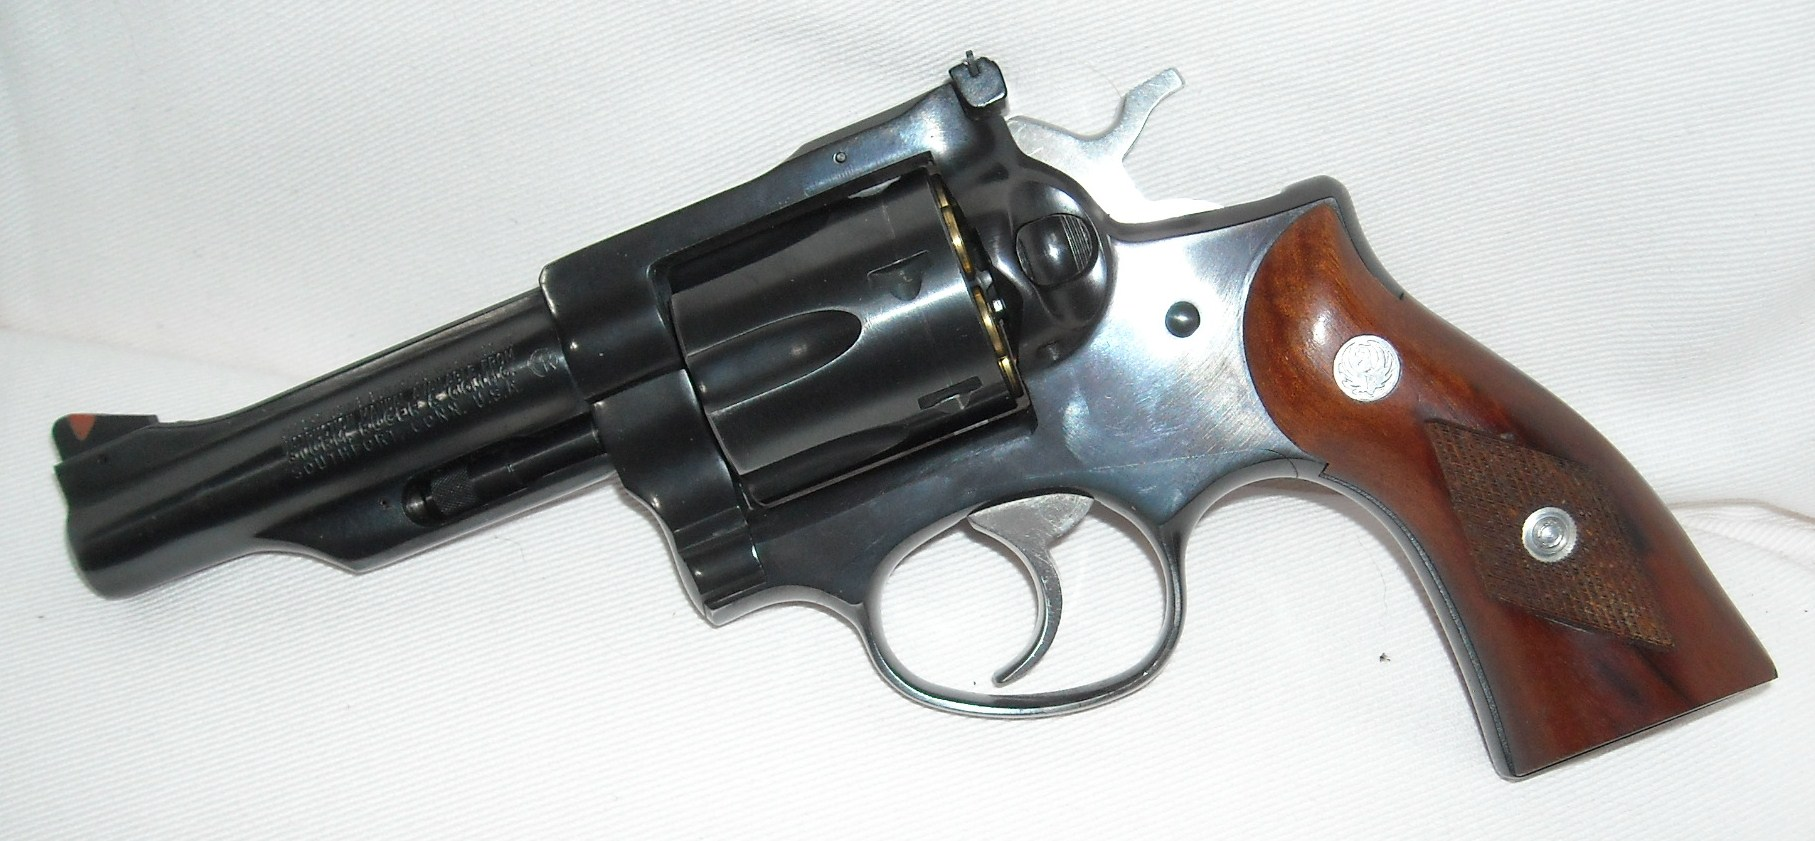 This is an image of a revolver